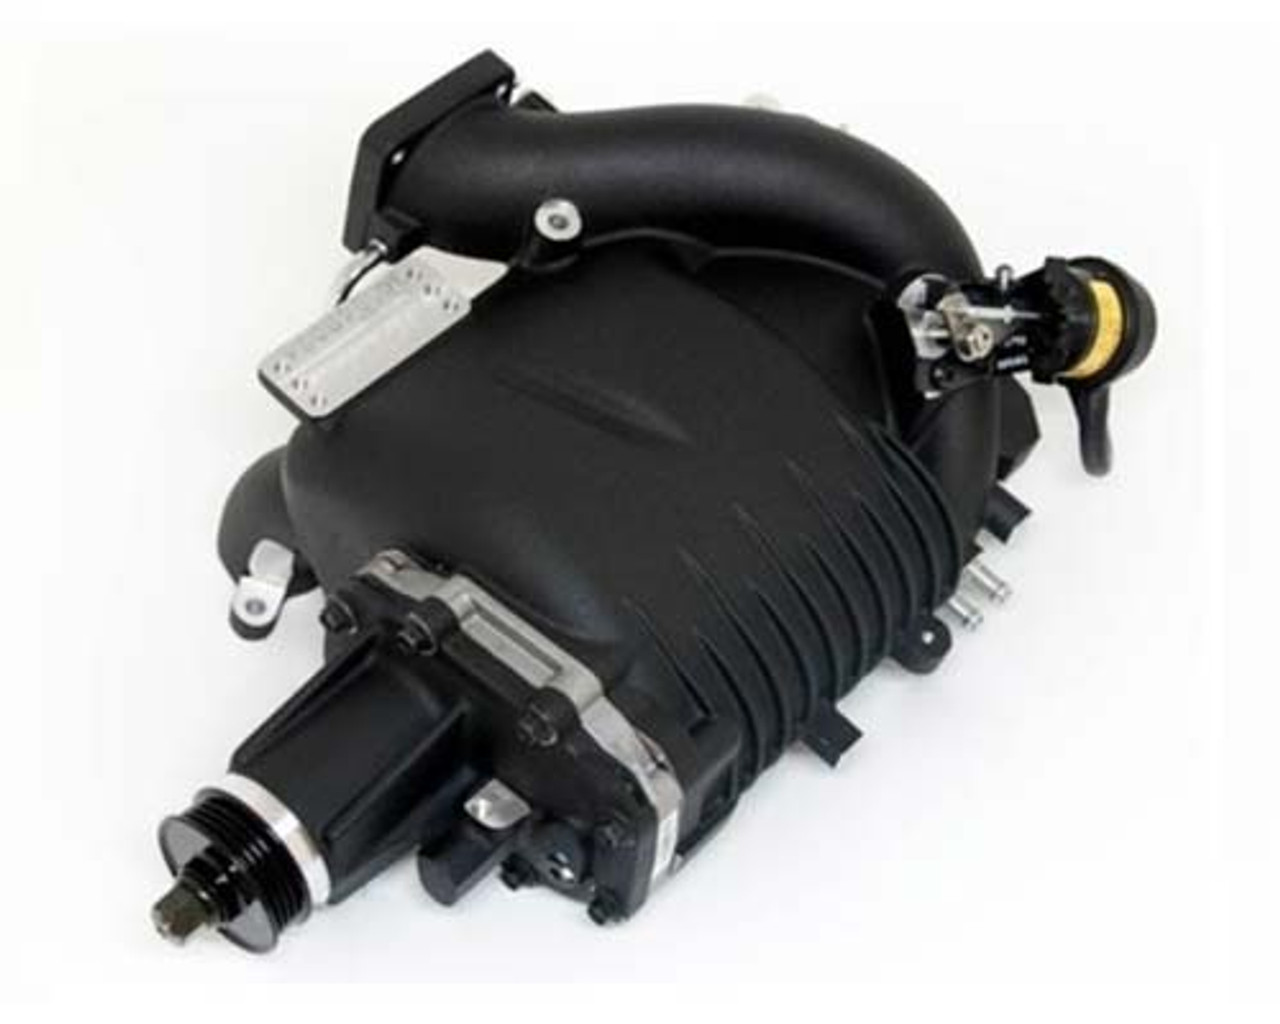 TOYOTA 5VZ-FE 3.4L V6 SUPERCHARGER SYSTEM 1997-2004 Toyota Tacoma 3.4L V6 1996-2002 Toyota 4Runner 3.4L V6 1997-1998 Toyota T100 3.4L V6 2000-2003 Toyota Tundra 3.4L V6 Also available for other 5VZ-FE 3.4L V6 platforms, other applications may require custom calibration.